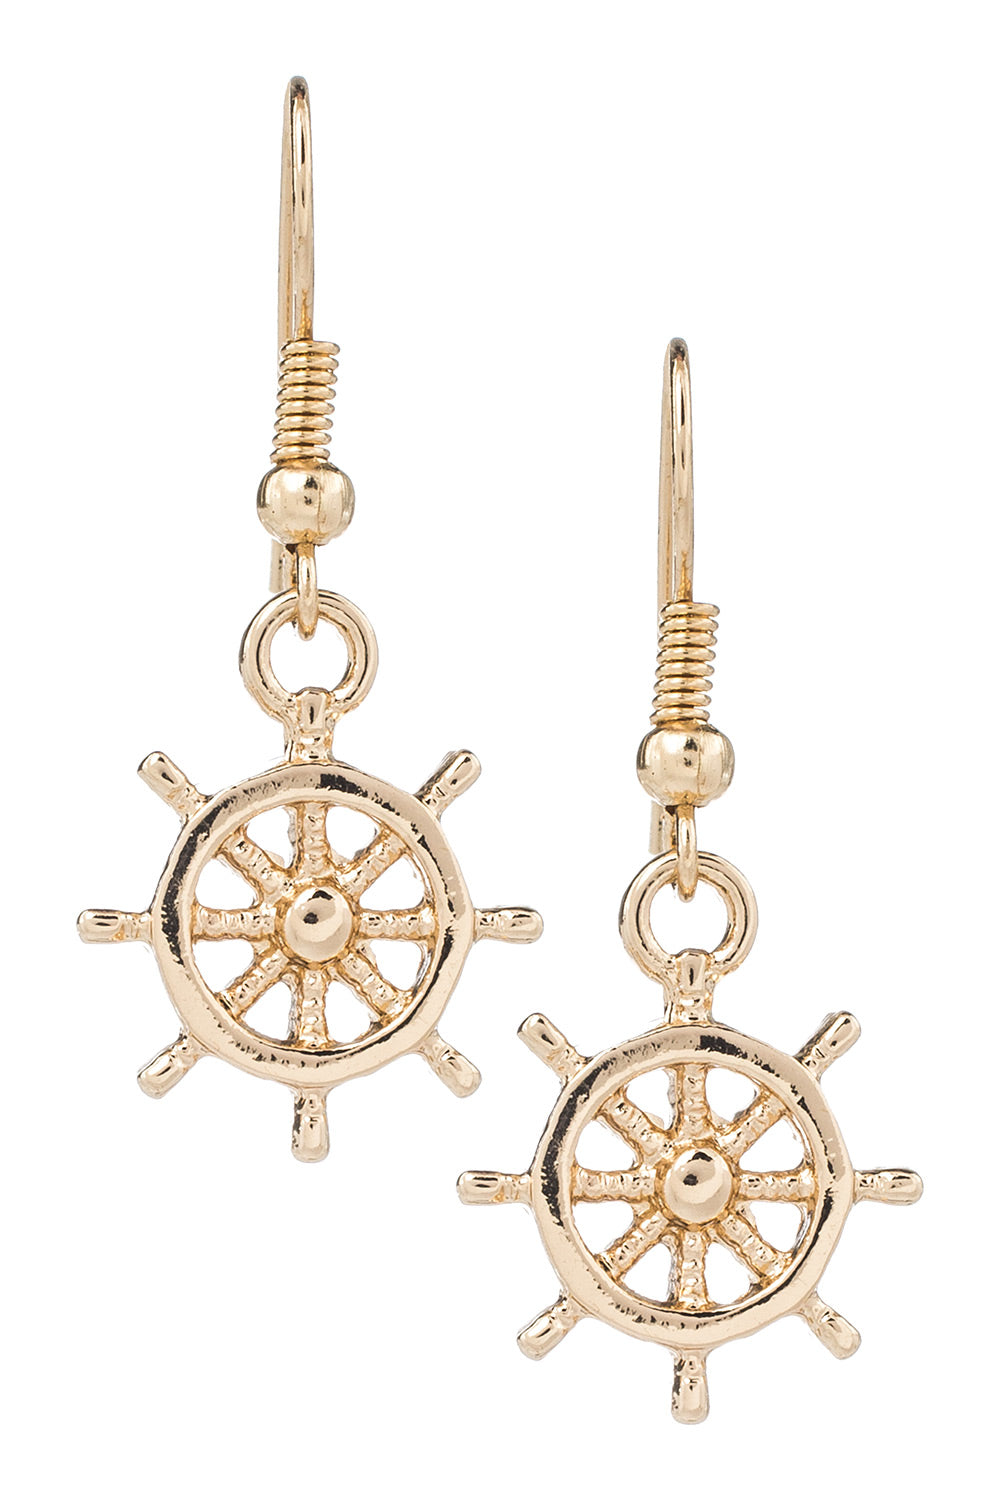 Type 1 Nautical Nonsense Earrings